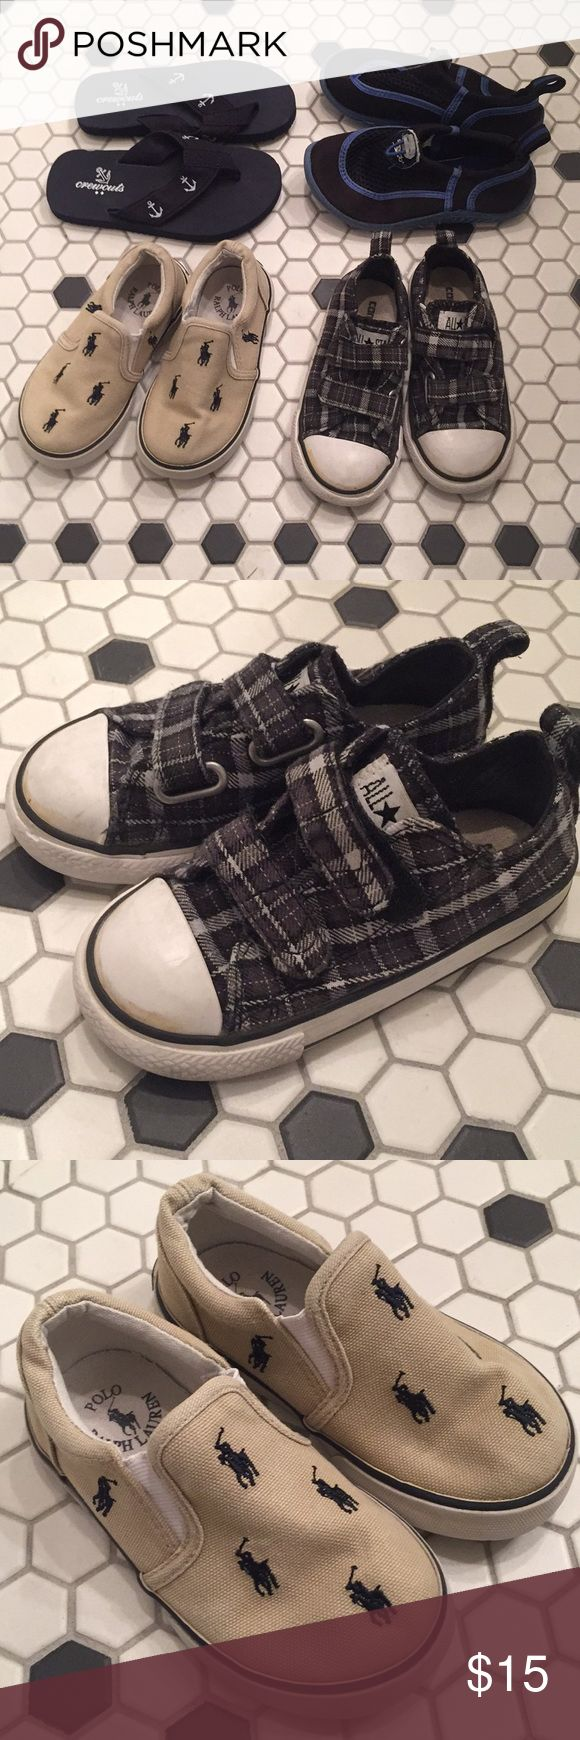 Boys Shoes: Converse Ralph Lauren J Crew Speedo 8T 4 pairs of Boys Shoes: Black Plaid Converse sz 8, Khaki Ralph Lauren slip-ons sz 8, Black Speedo water shoes sz 7 (run big), J Crew flip flops sz 8.  Great used condition!  Check out all of my boys clothes & shoes.  I love to bundle.  Send me an offer! Converse Shoes Sneakers